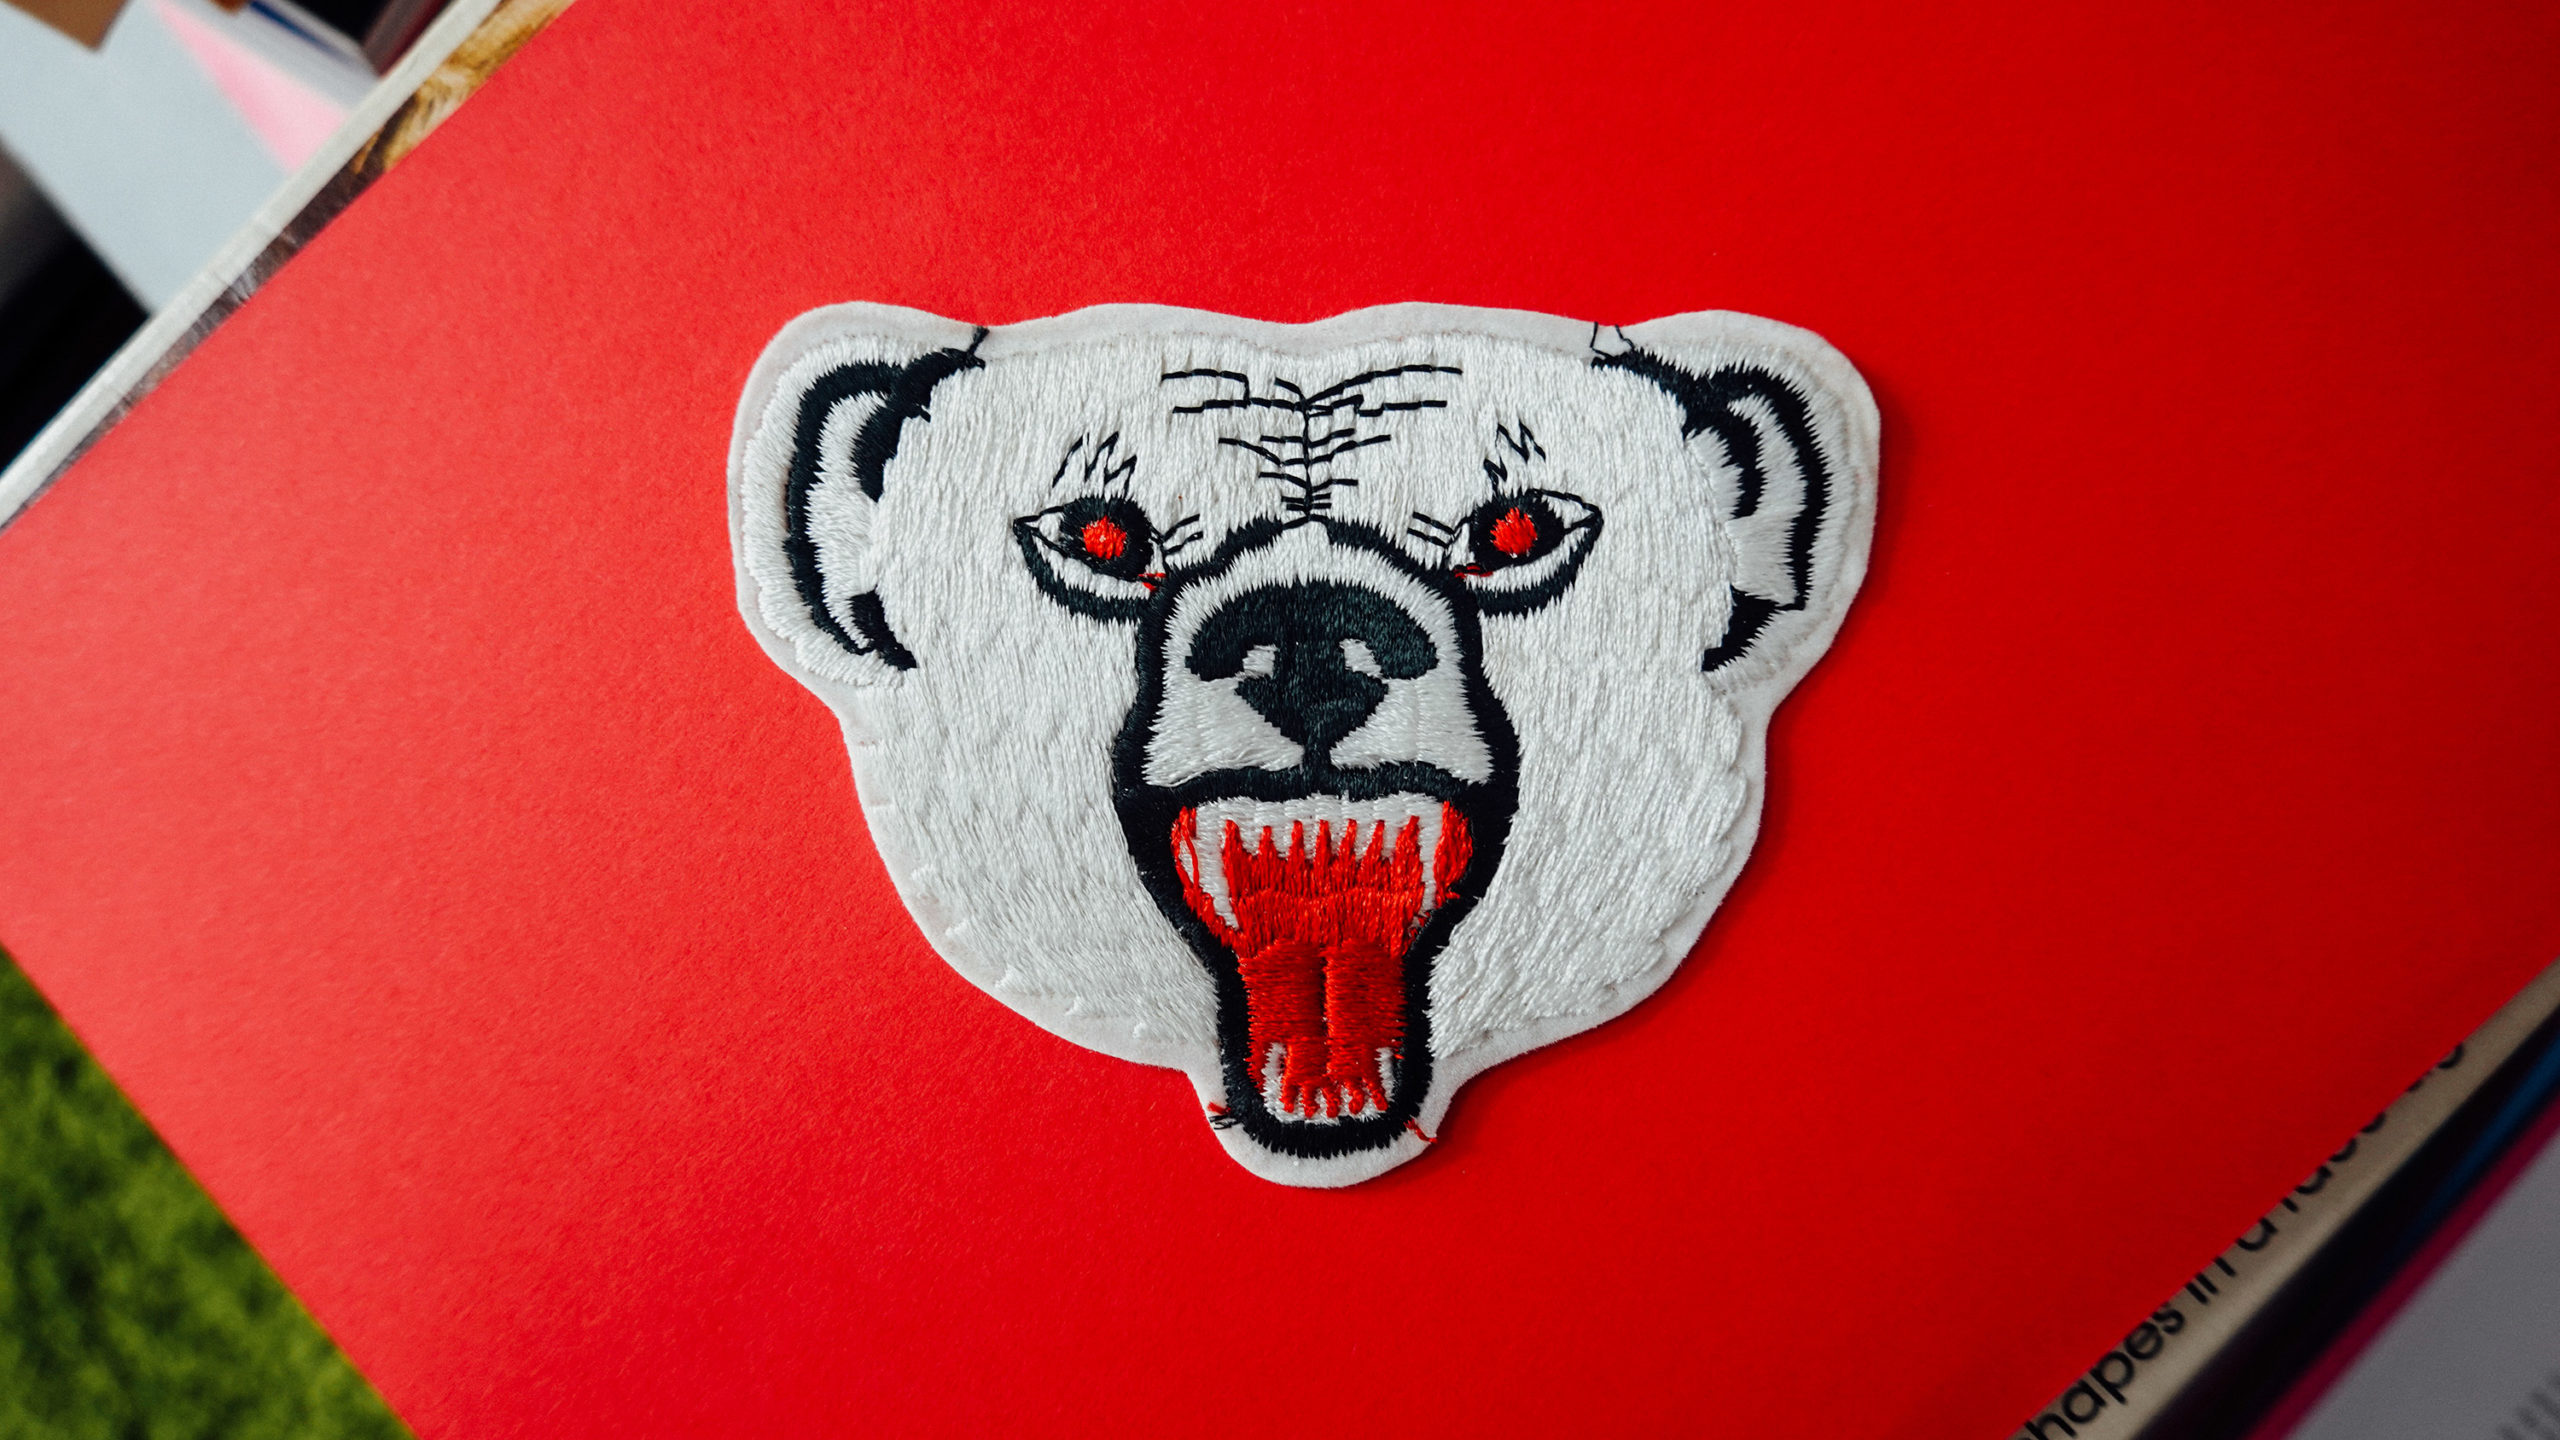 A patch of a polar bear on a red background.